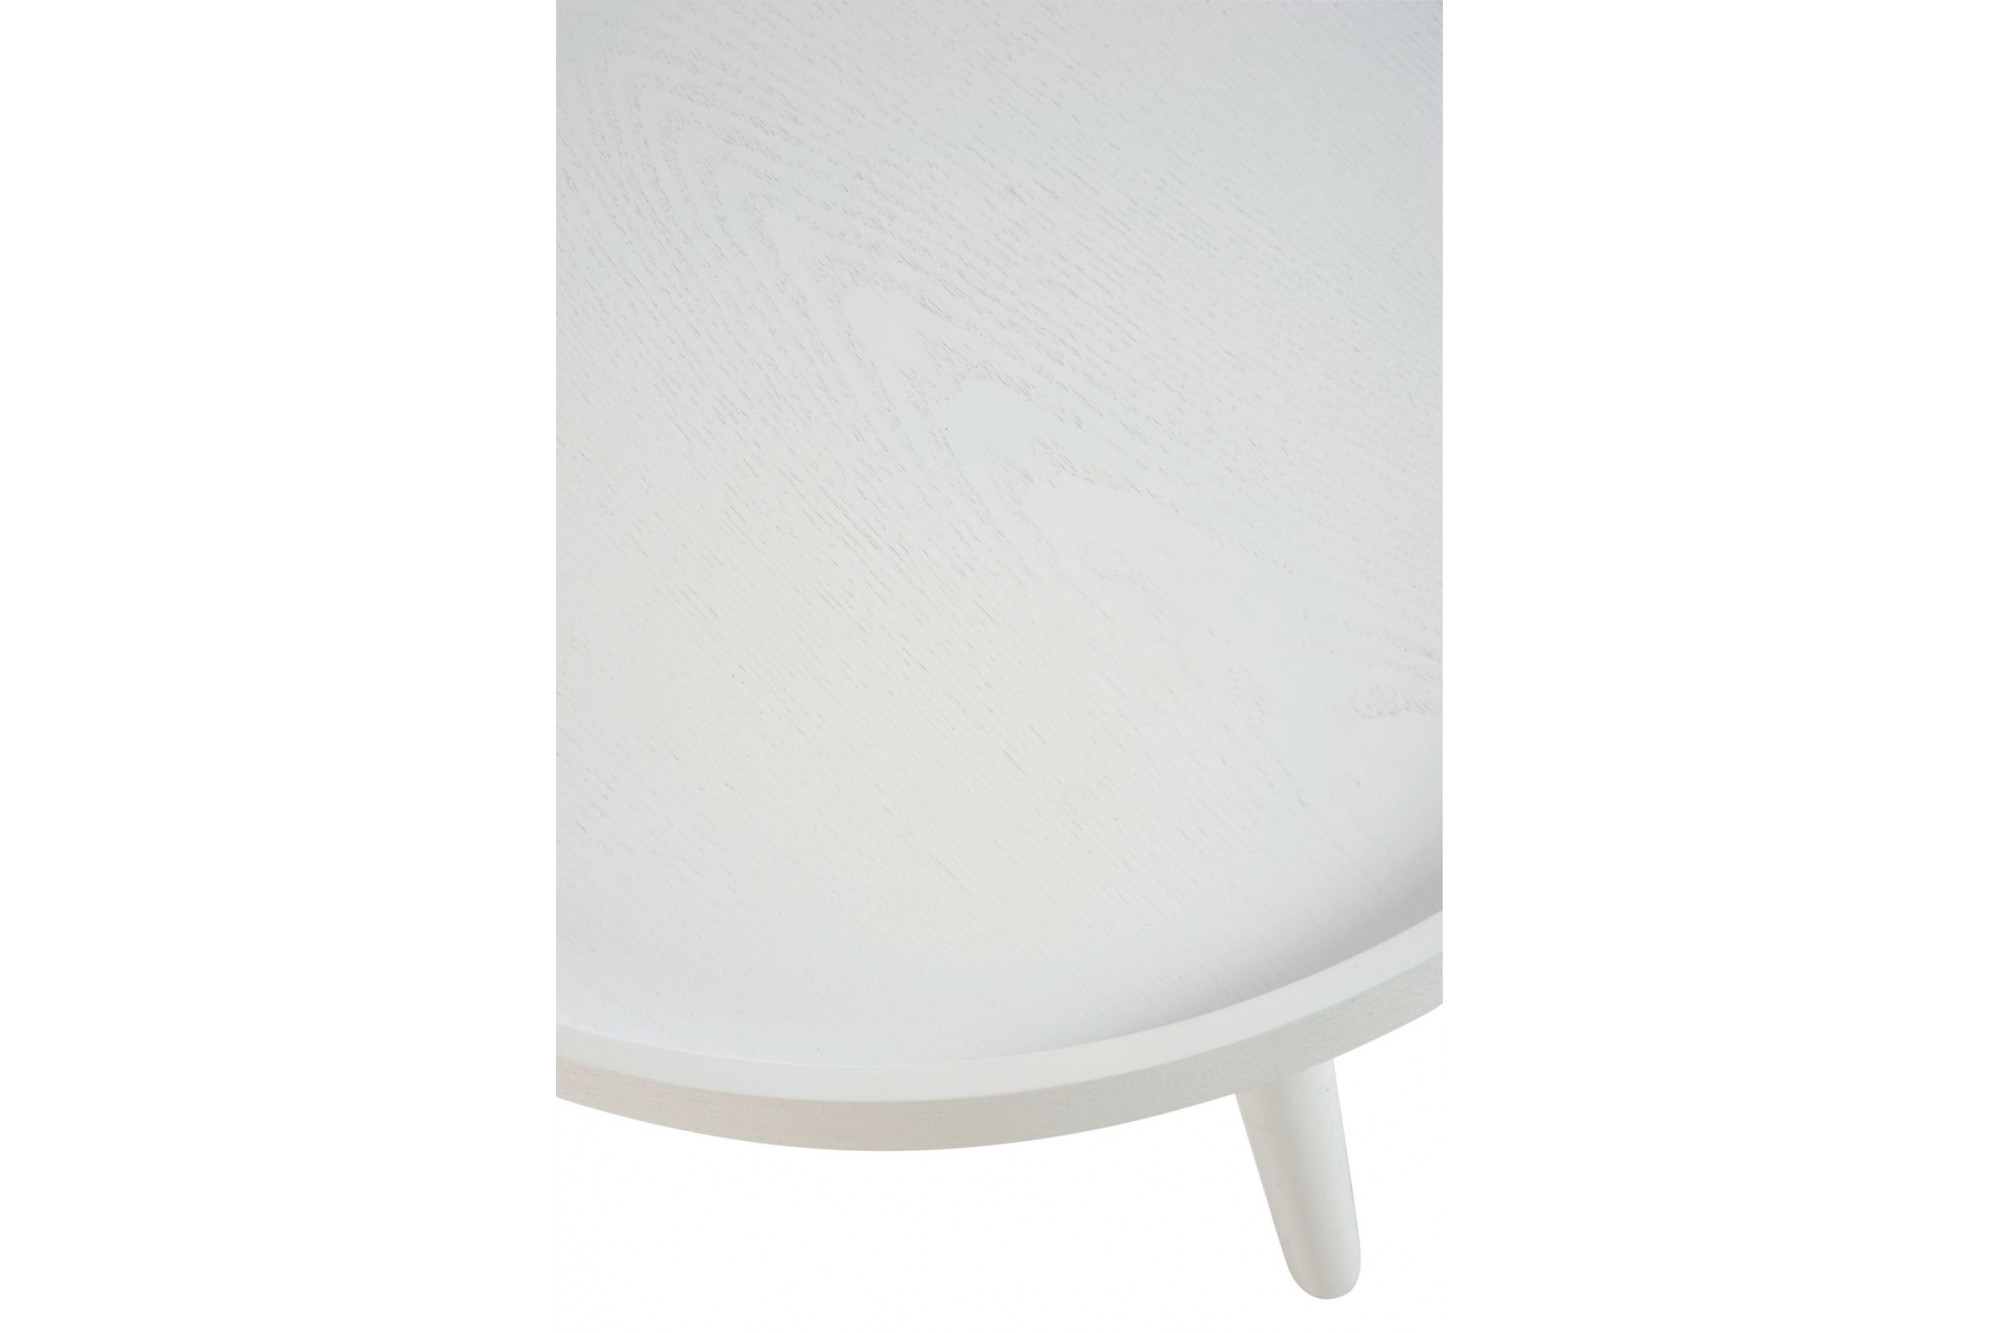 Table Basse Ronde Moderne Table Basse Ronde Moderne Blanche Hellin